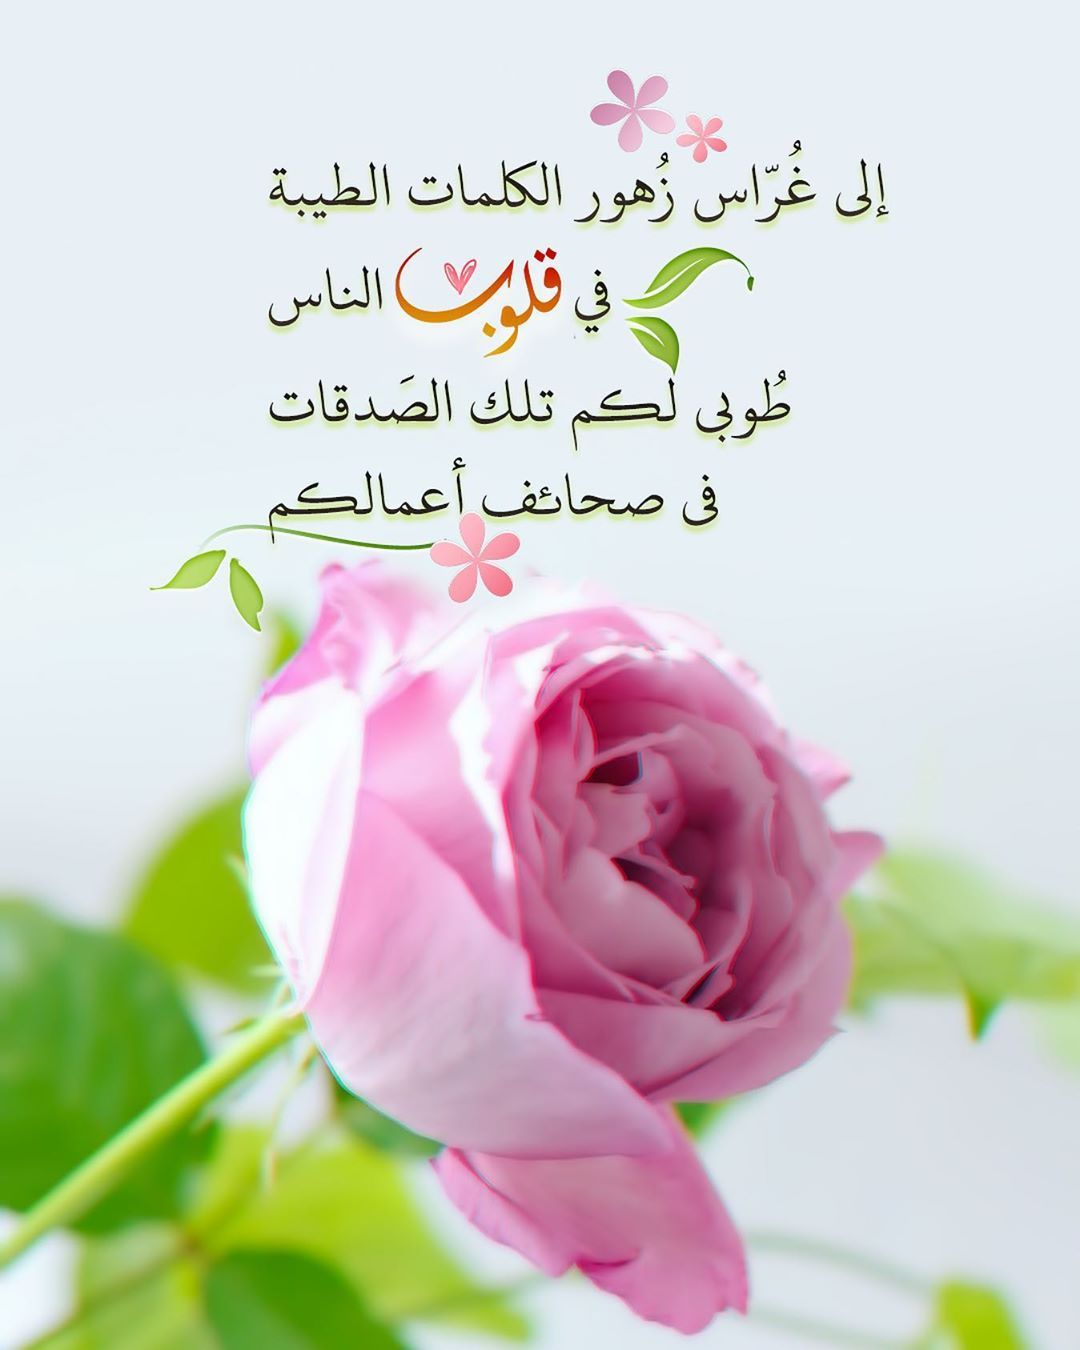 1 580 Likes 17 Comments Pearla0203 On Instagram إلى غ ر اس ز هور الكلمات الط يبة في ق لوب النا Islamic Messages Islamic Phrases Arabic Love Quotes